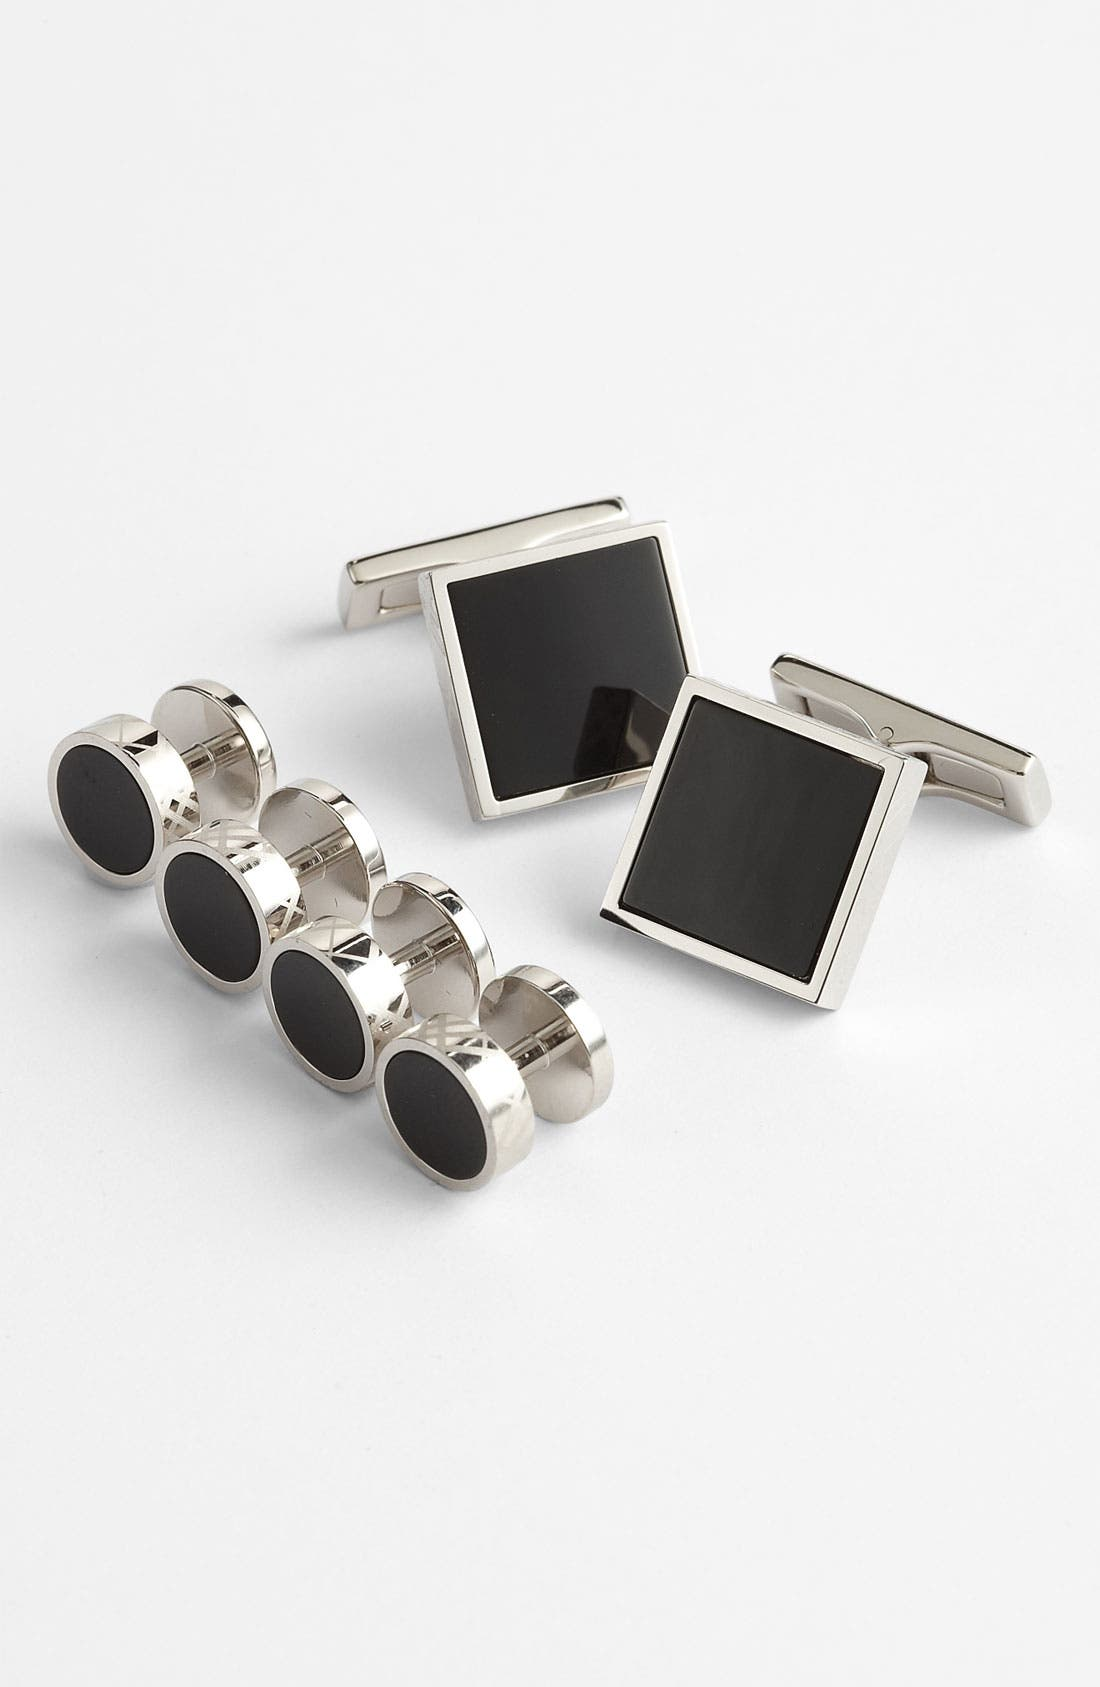 Cuff Links & Shirt Stud Set,                             Main thumbnail 1, color,                             001